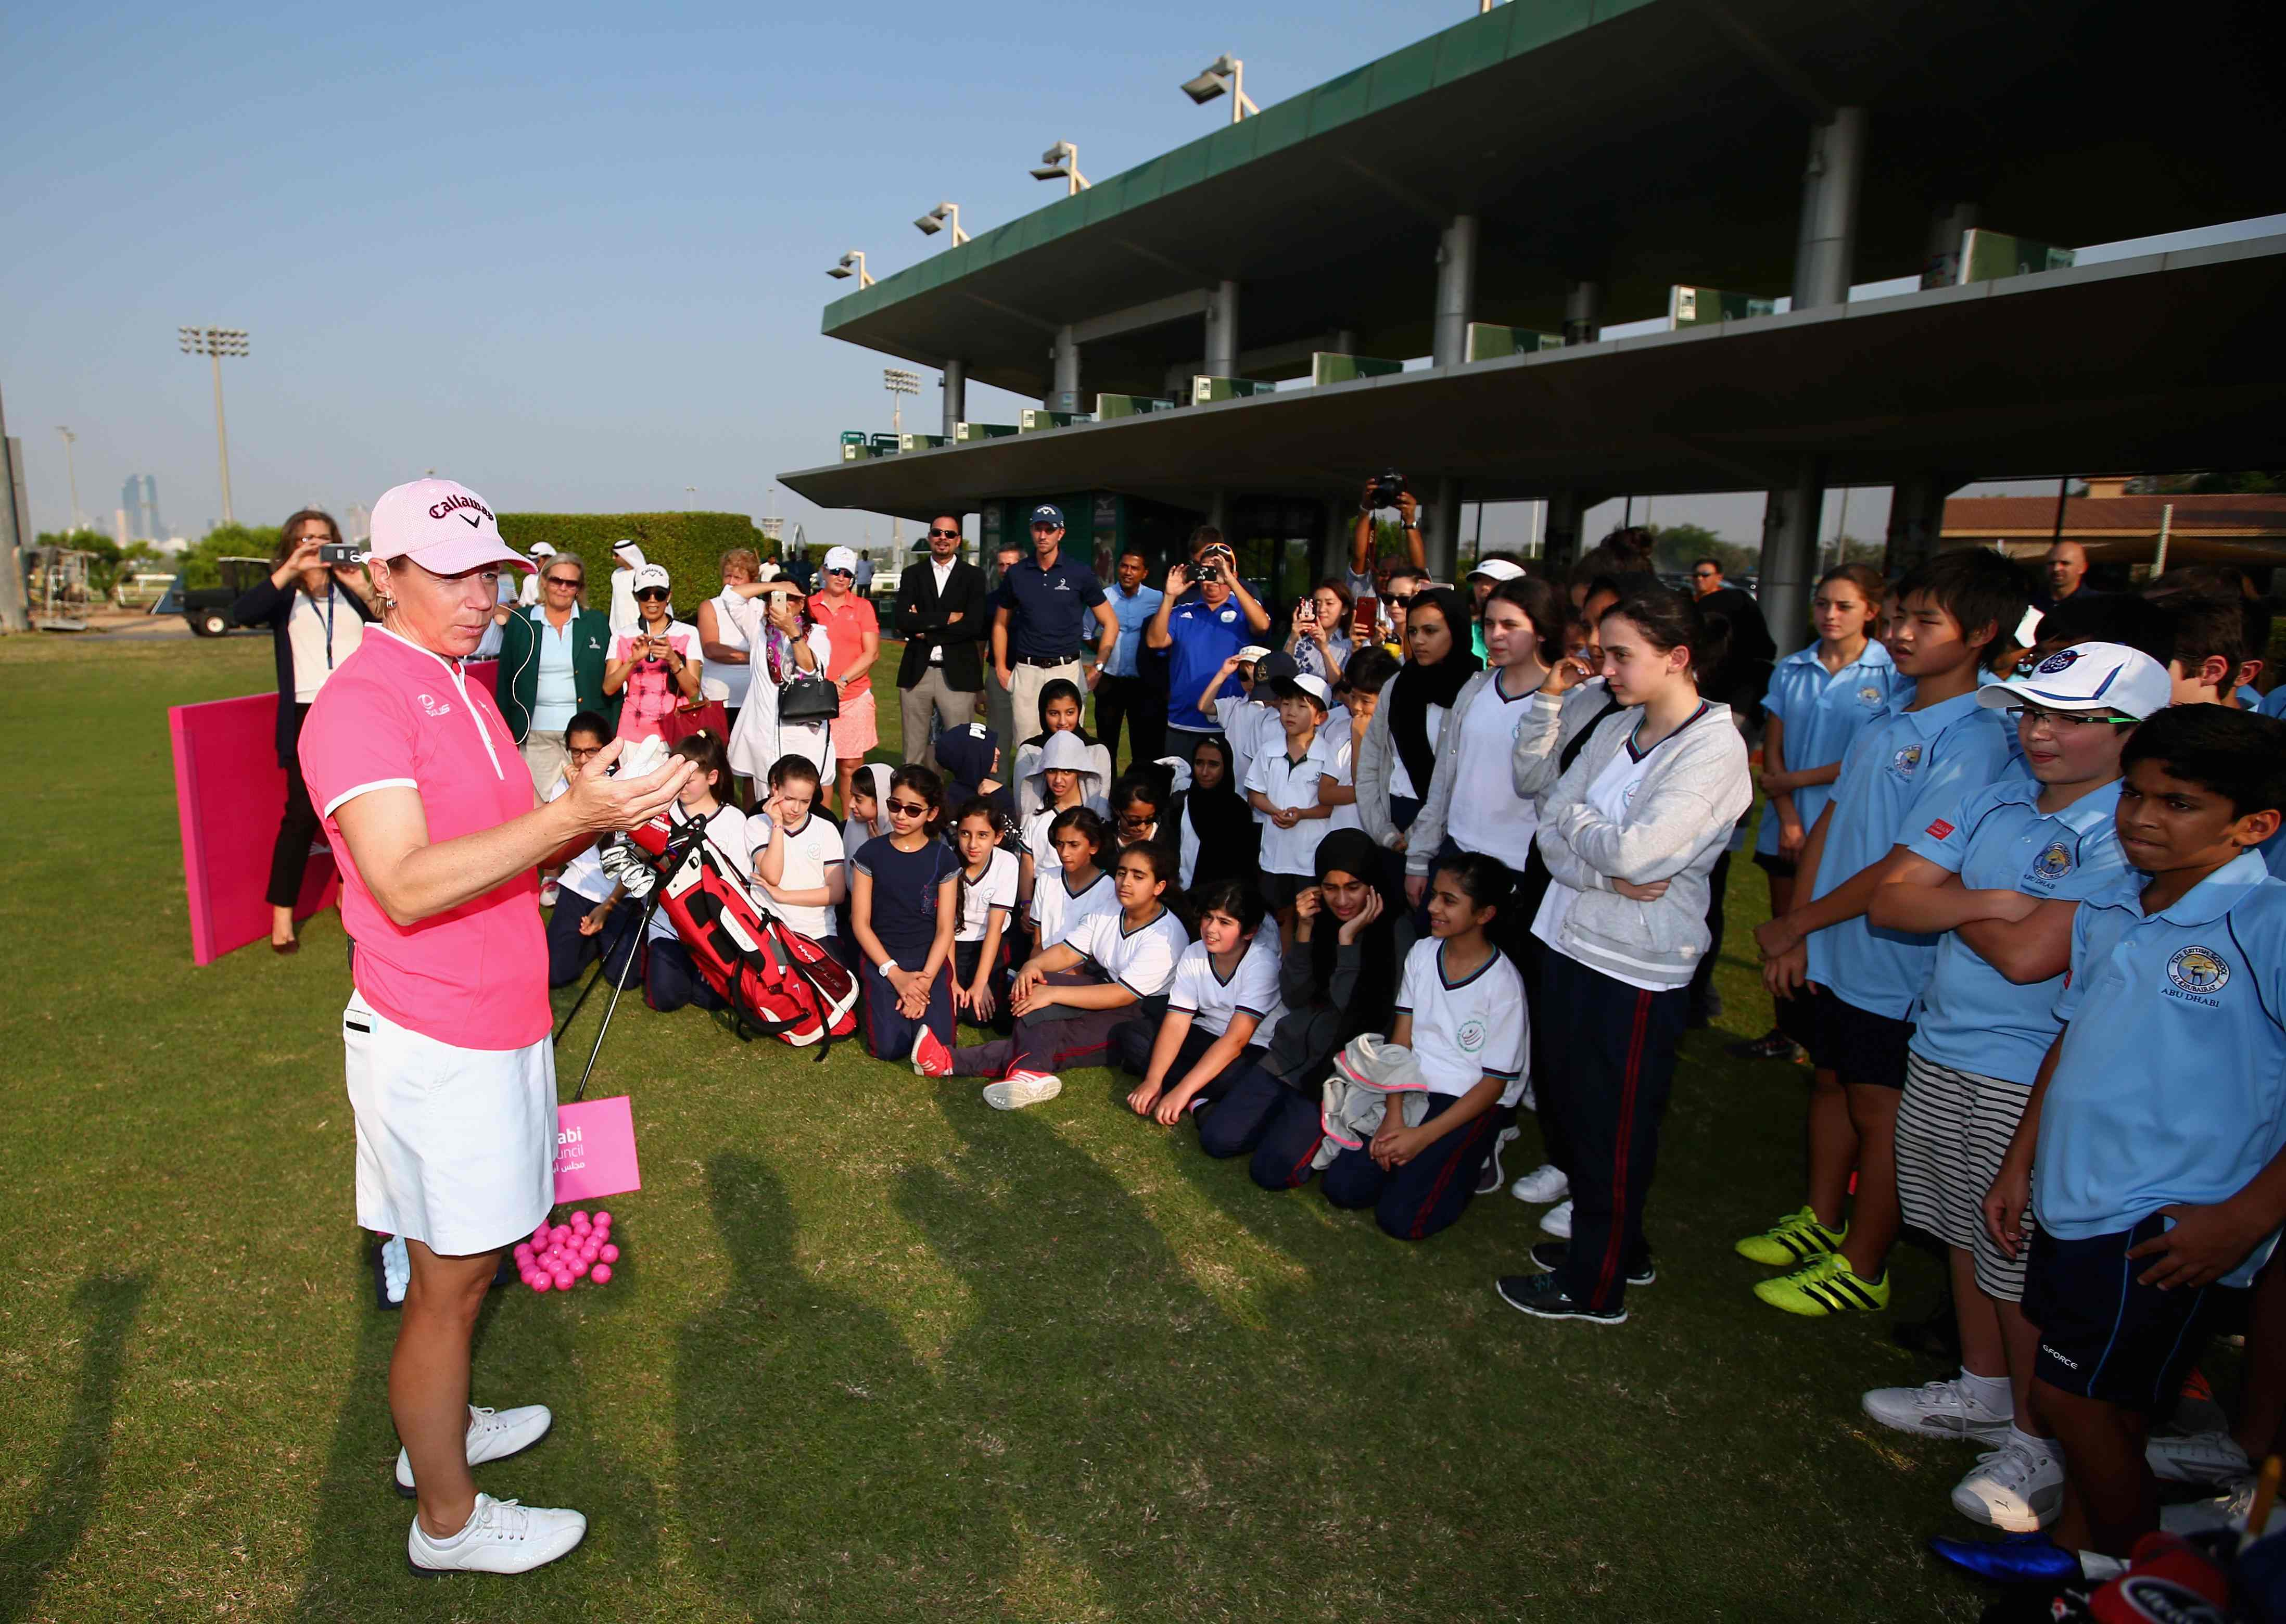 annika-inspires-the-younger-golfers-of-abu-dhabi